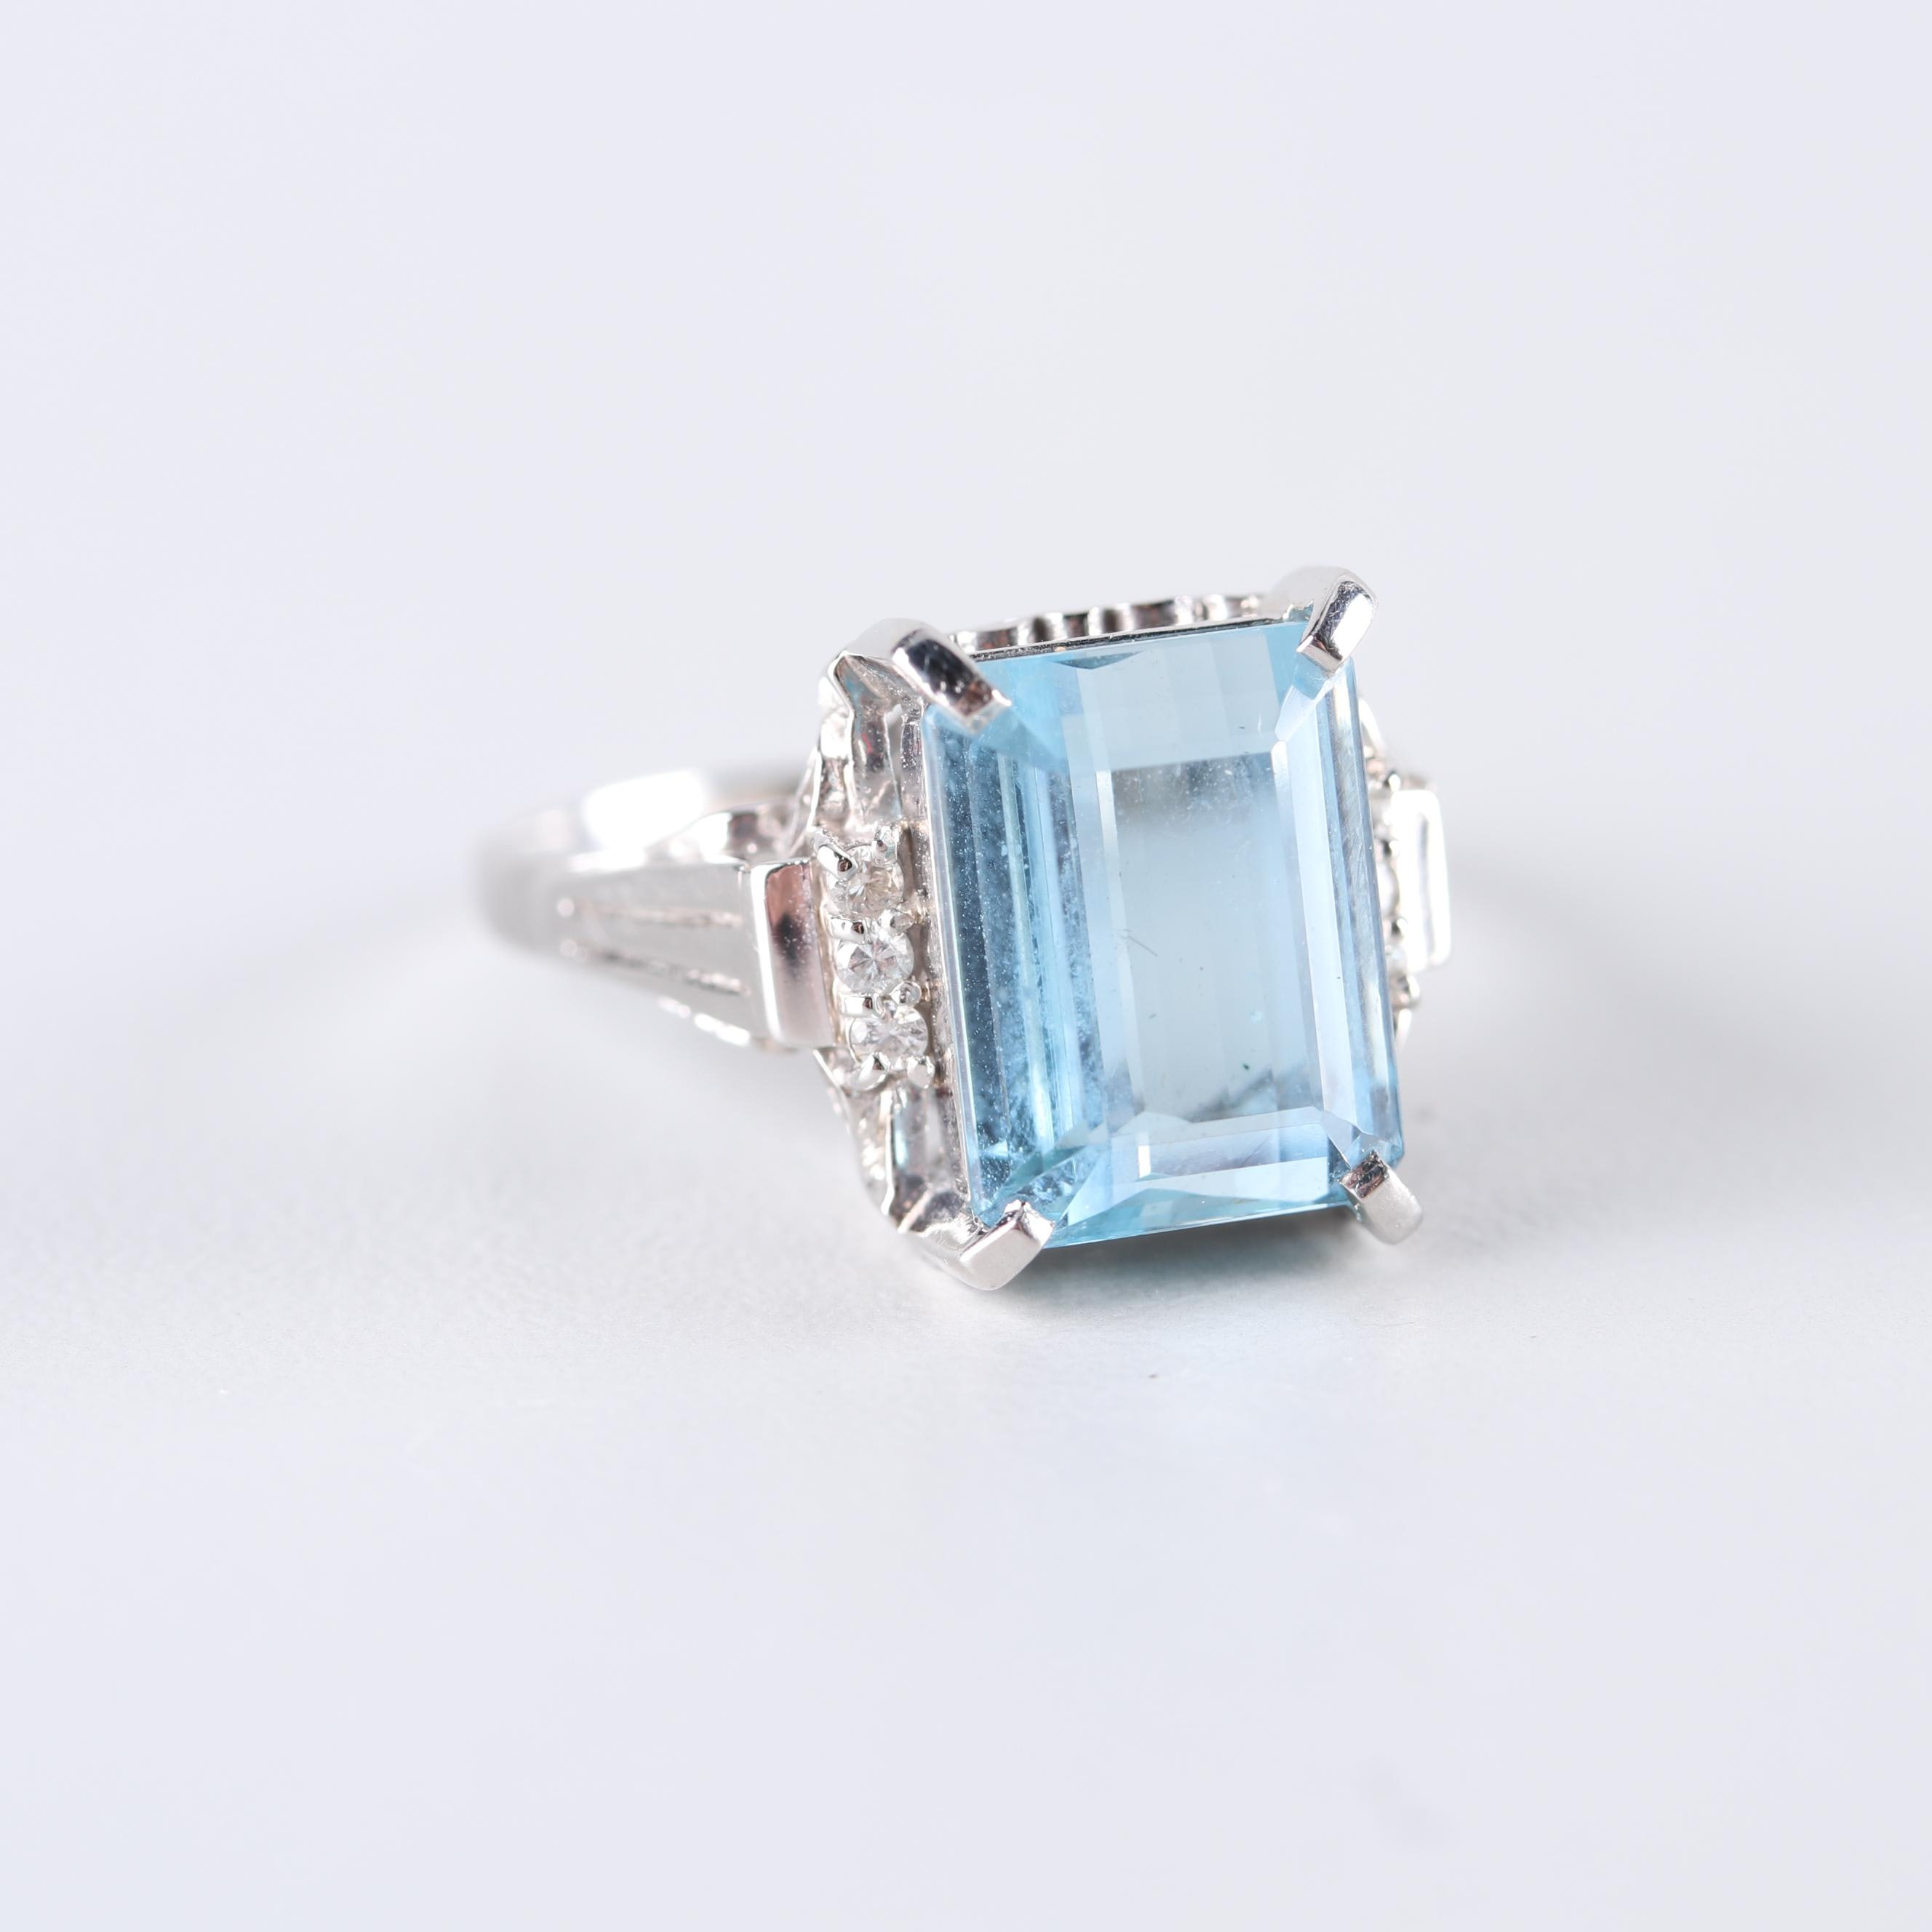 Platinum 5.82 CT Aquamarine and Diamond Ring